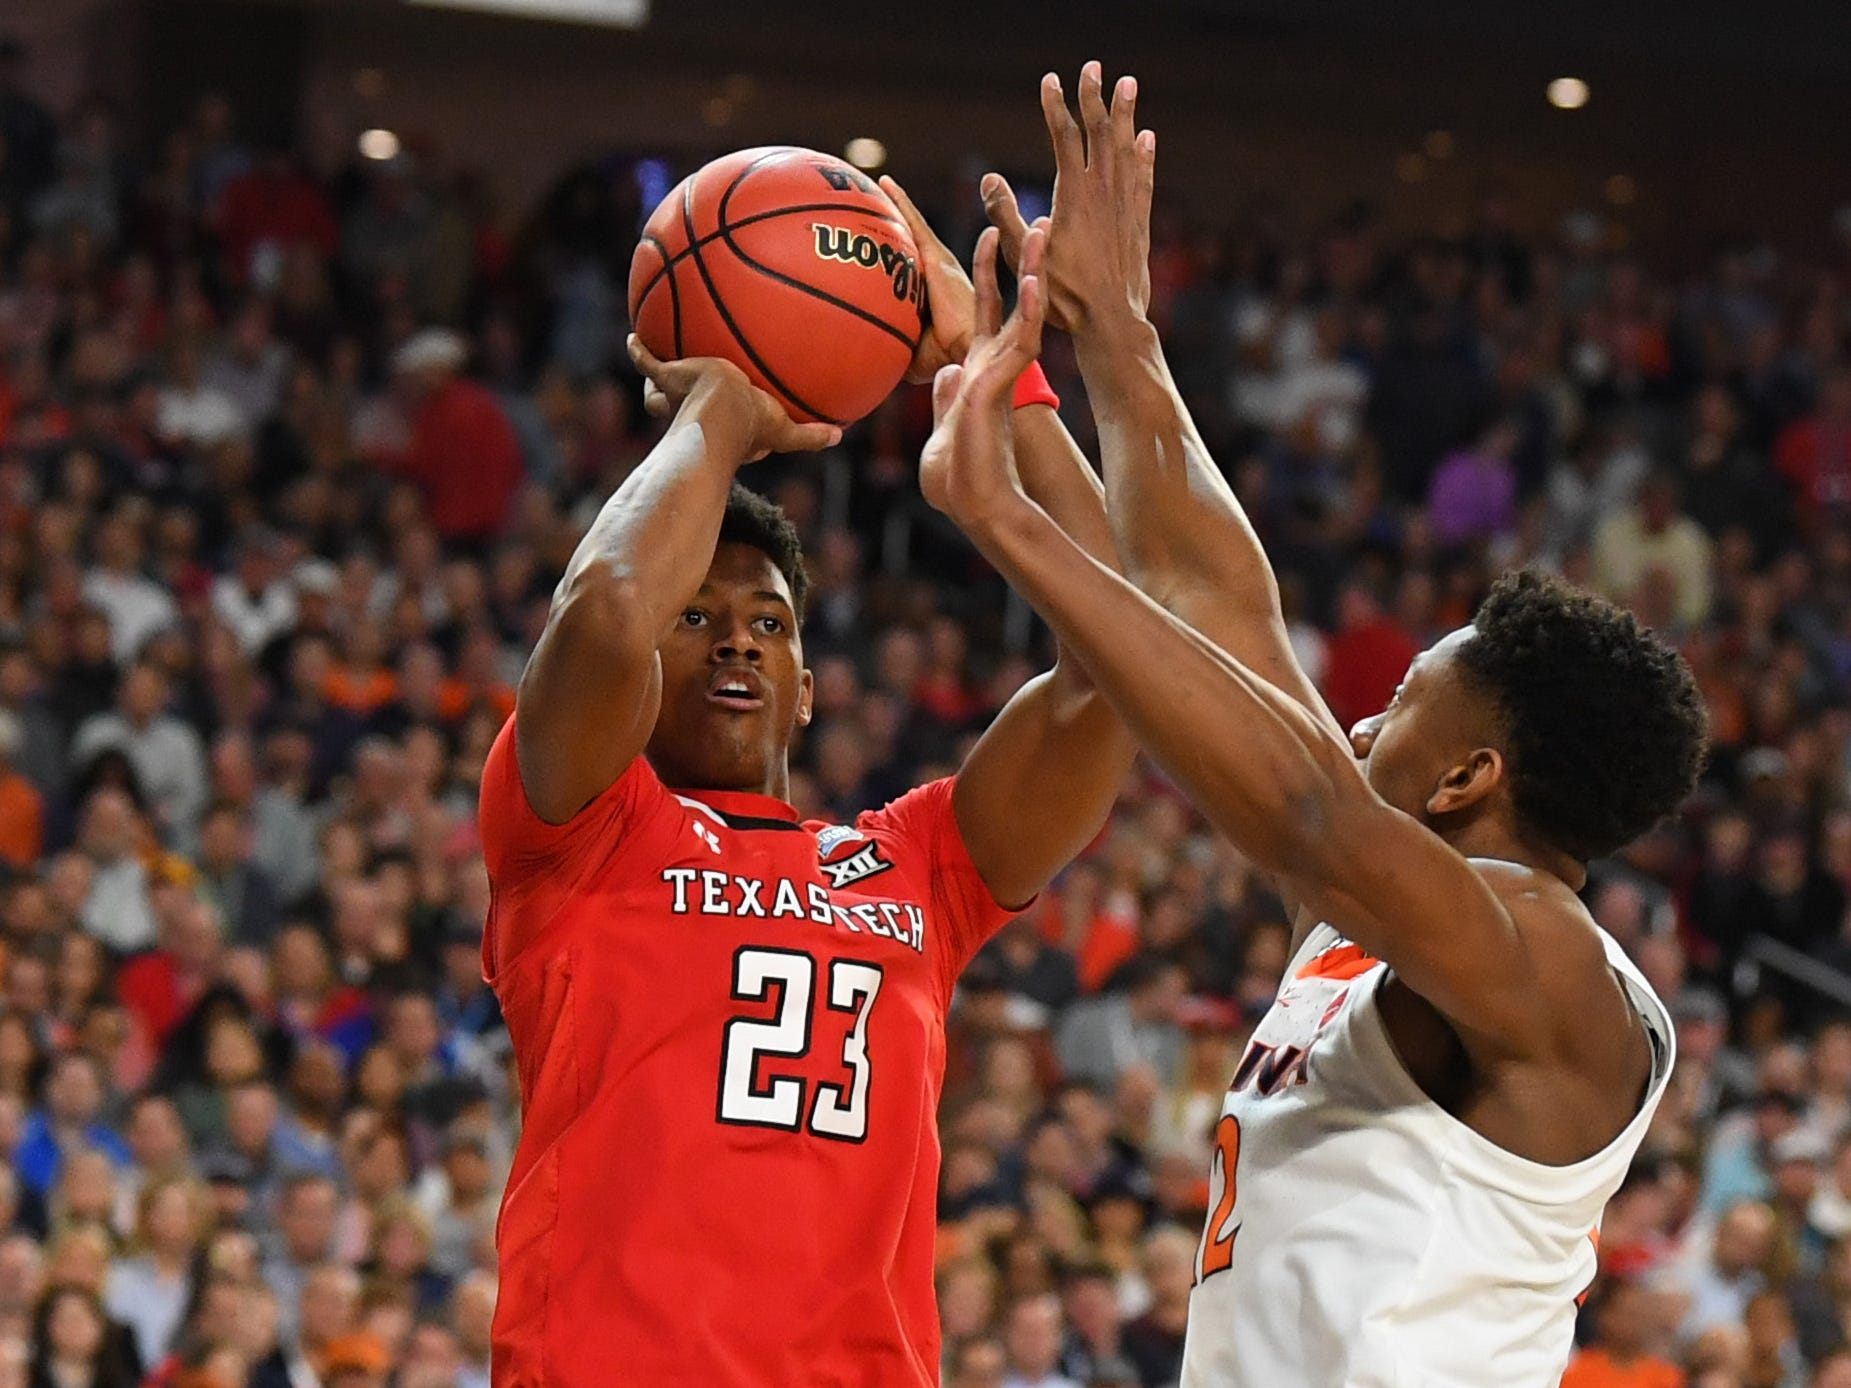 Apr 8, 2019; Minneapolis, MN, USA; Texas Tech Red Raiders guard Jarrett Culver (23) shoots the ball defended by Virginia Cavaliers guard De'Andre Hunter (12) in the championship game of the 2019 men's Final Four at US Bank Stadium. Mandatory Credit: Robert Deutsch-USA TODAY Sports